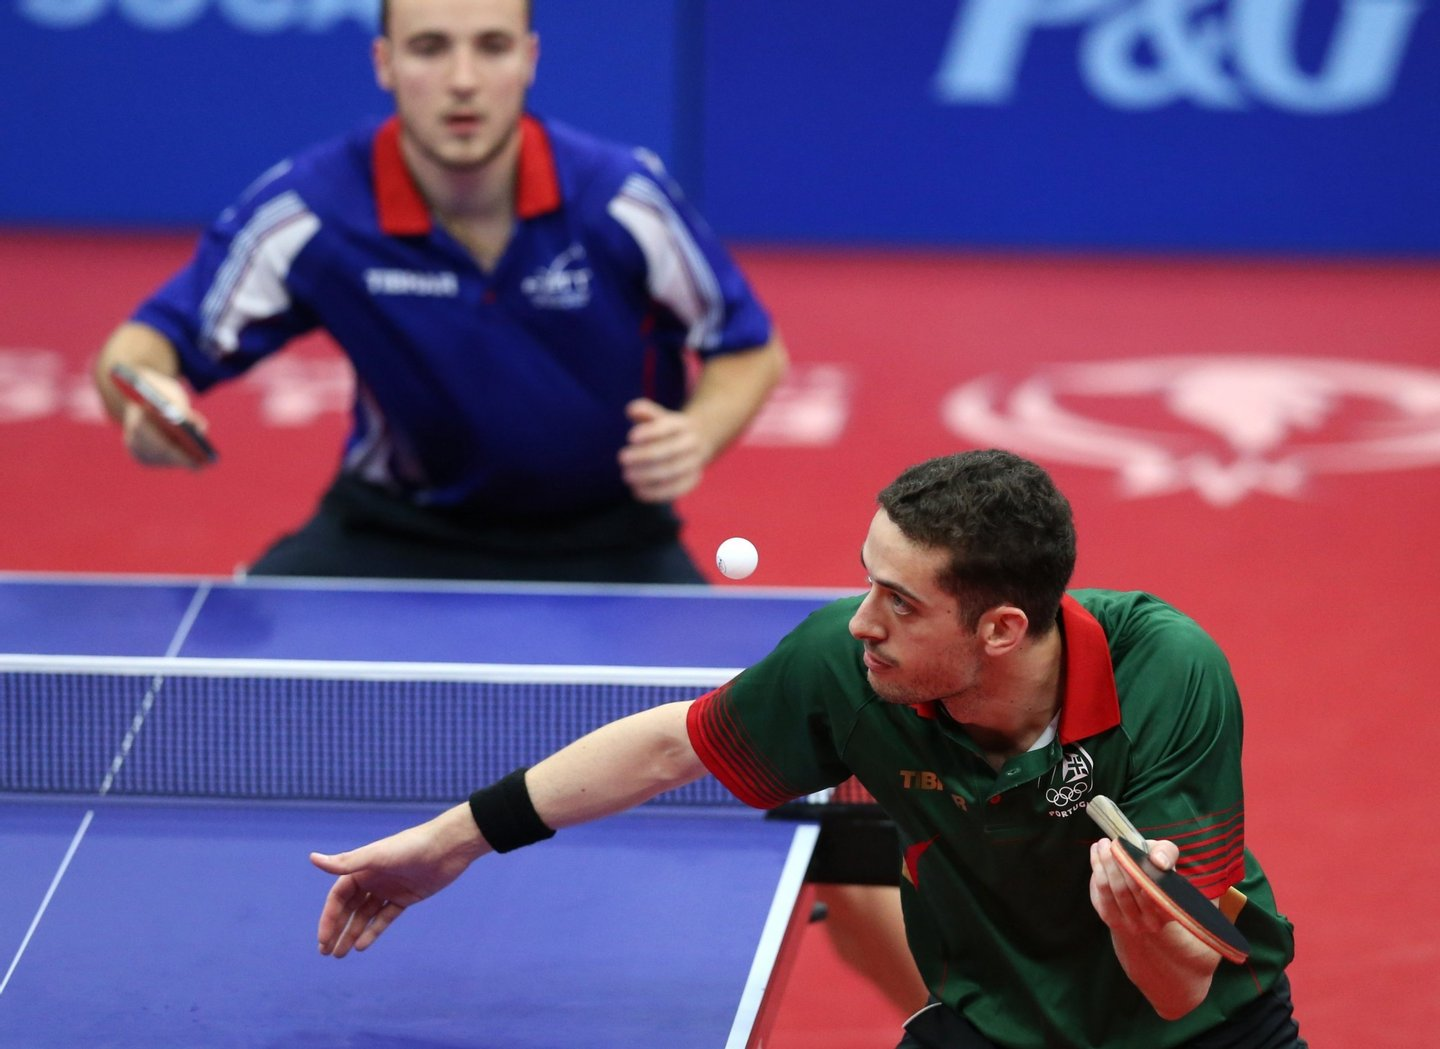 epa04801108 Marcos Freitas (R) of Portugal serves the ball to Simon Gauzy of France during the gold medal match of the men's Table Tennis team event at the Baku 2015 European Games in Baku, Azerbaijan, 15 June 2015.  EPA/ZURAB KURTSIKIDZE